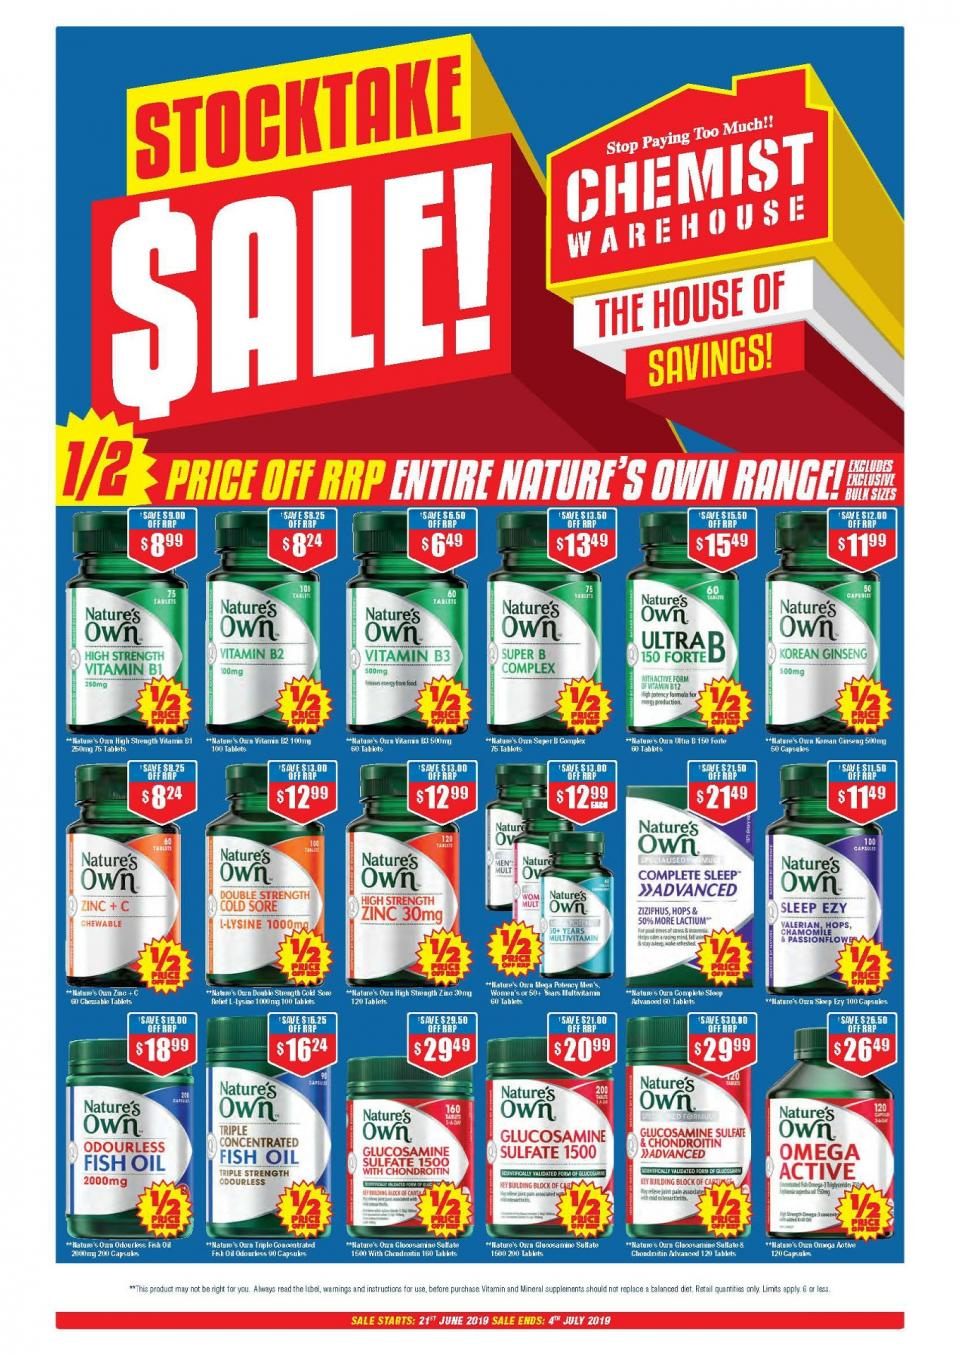 chemist warehouse catalogue 21 jun 4 jul 2019